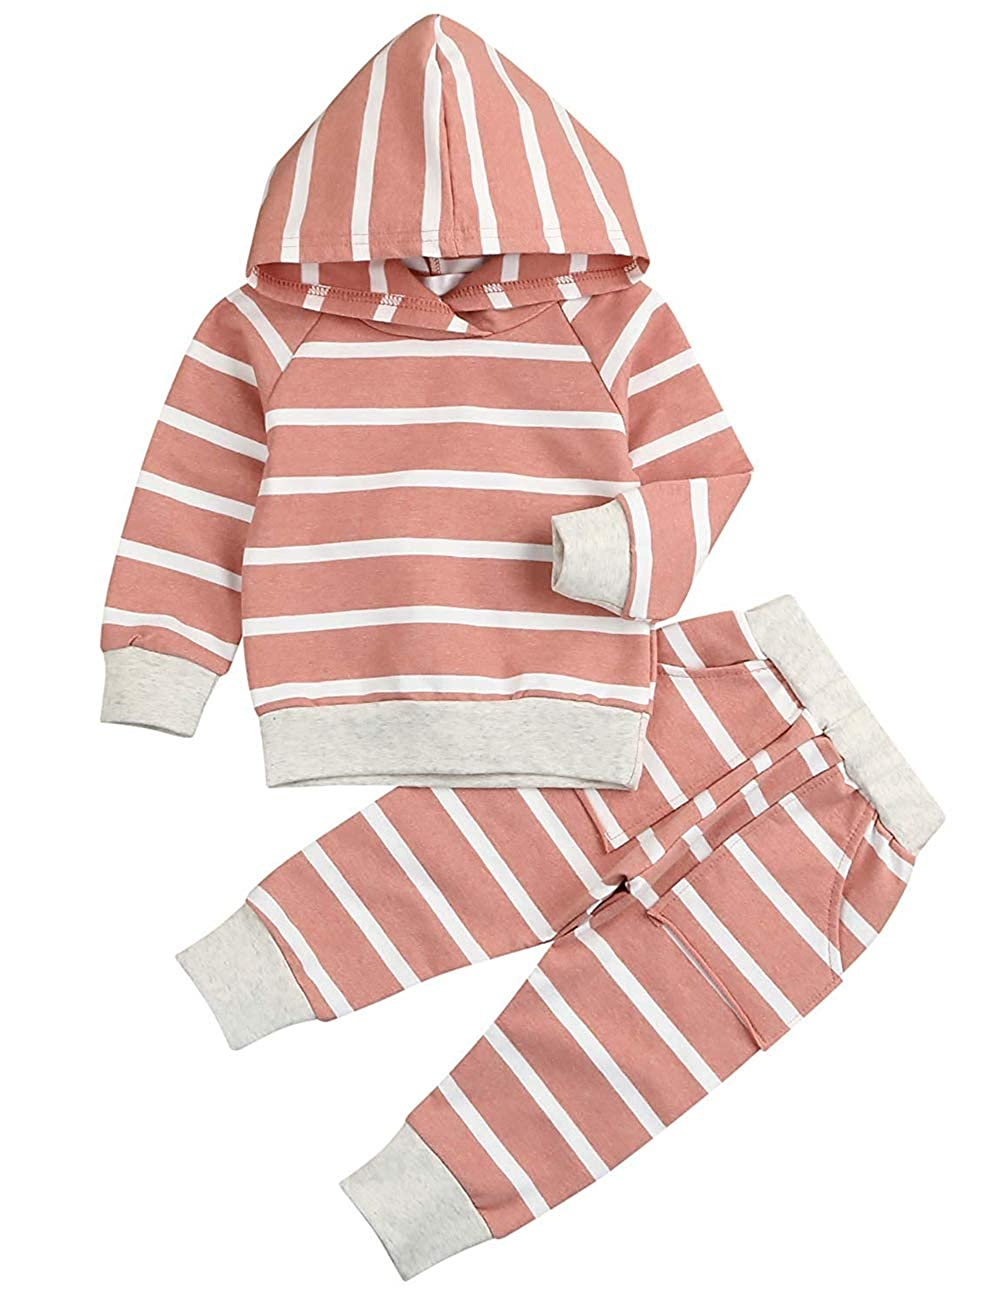 a6e2d74b Amazon.com: Baby Girls Boys Winter Clothes Set Striped Hoodie Sweatshirt  Pants Outfit Sets: Clothing